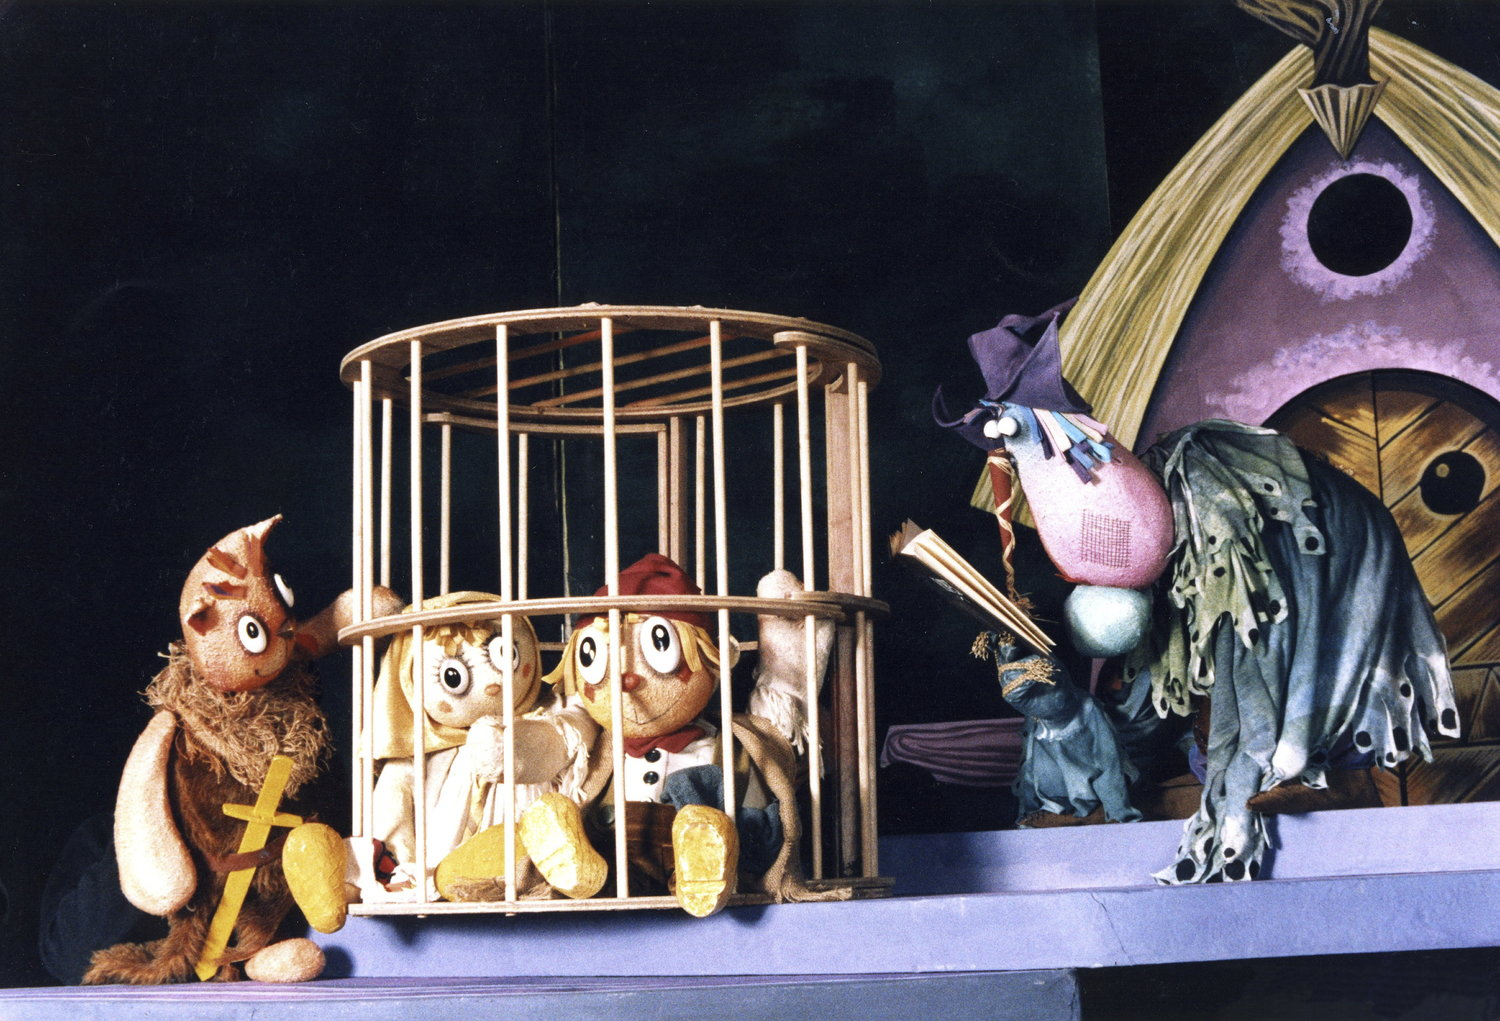 <em>Hansel and Gretel</em> (1985) par le Cannon Hill Puppet Theatre (Birmingham, Royaume-Uni), mise en scène : Simon Painter, conception et fabrication : John M. Blundall. Marionnettes à tiges. Photo: John M. Blundall